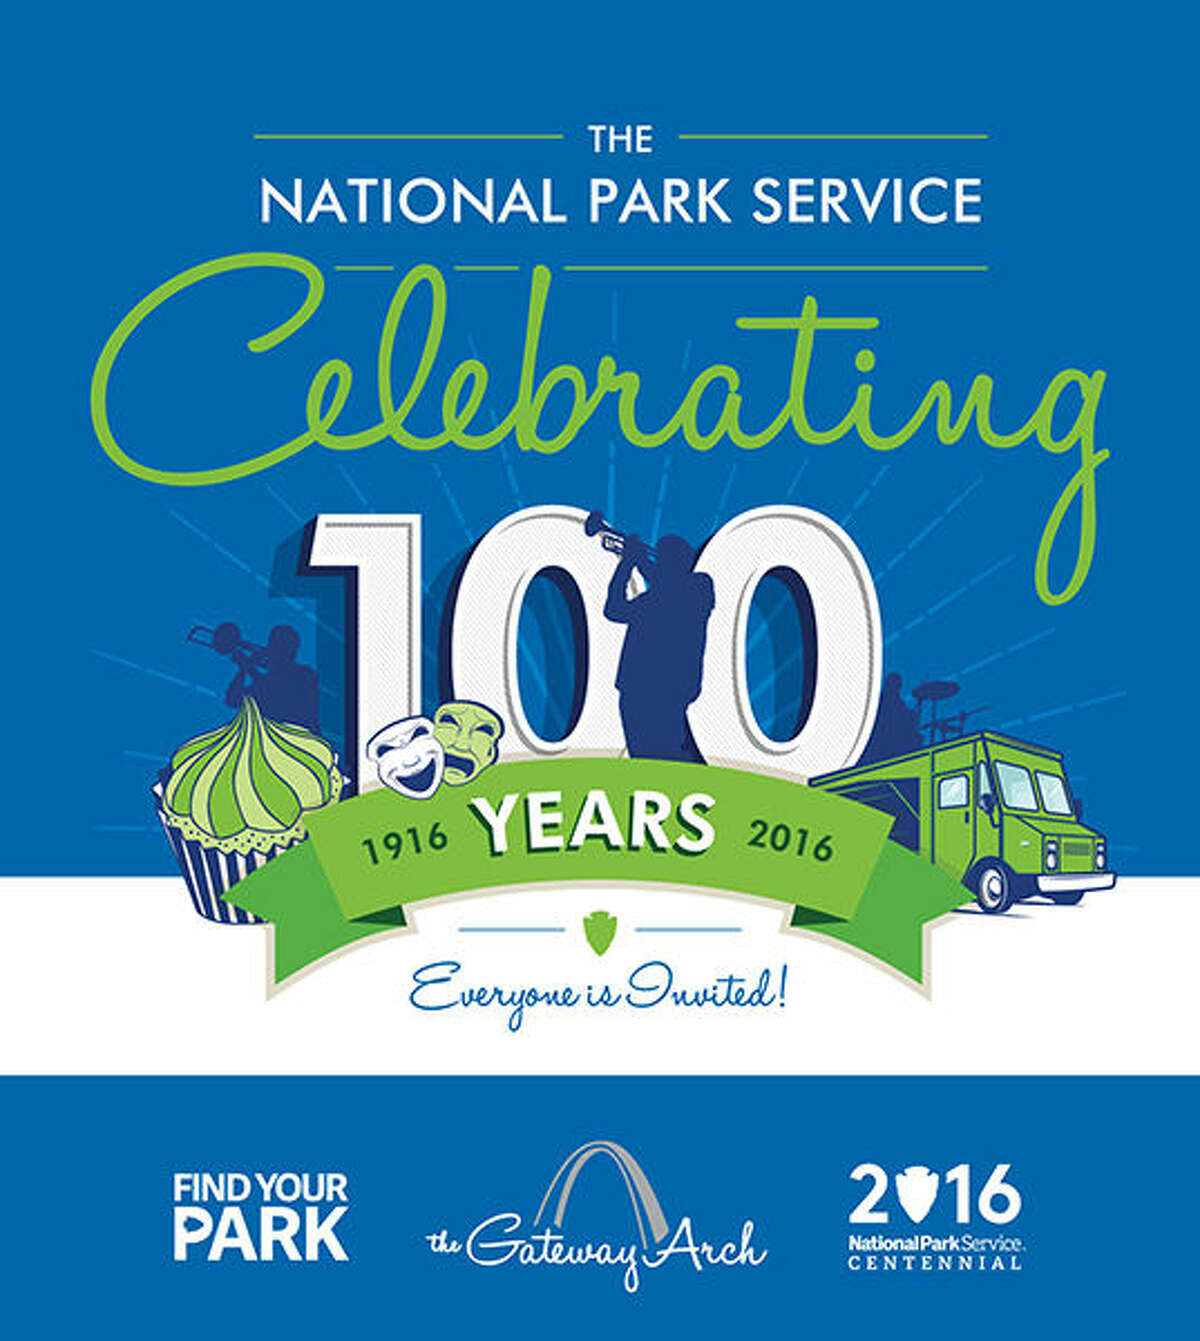 The National Park Service is celebrating its centennial.